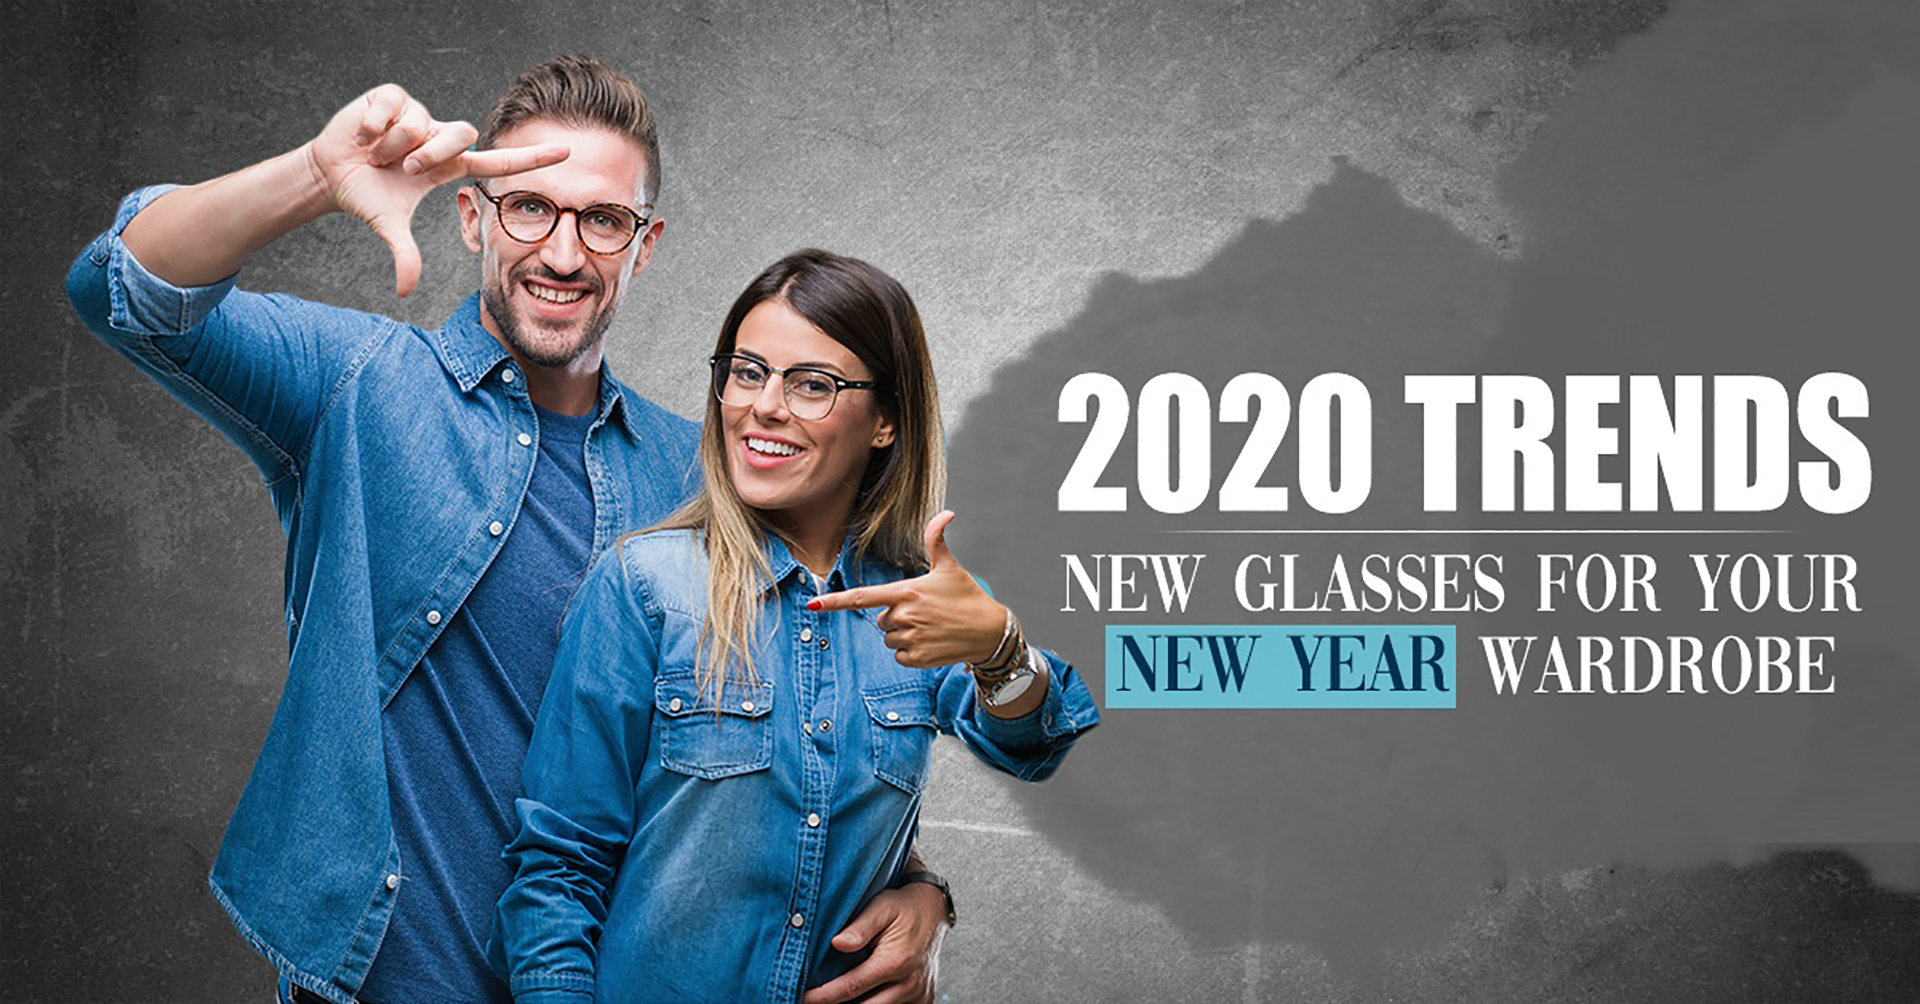 4) 2020 TRENDS: NEW GLASSES FOR YOUR NEW YEAR WARDROBE